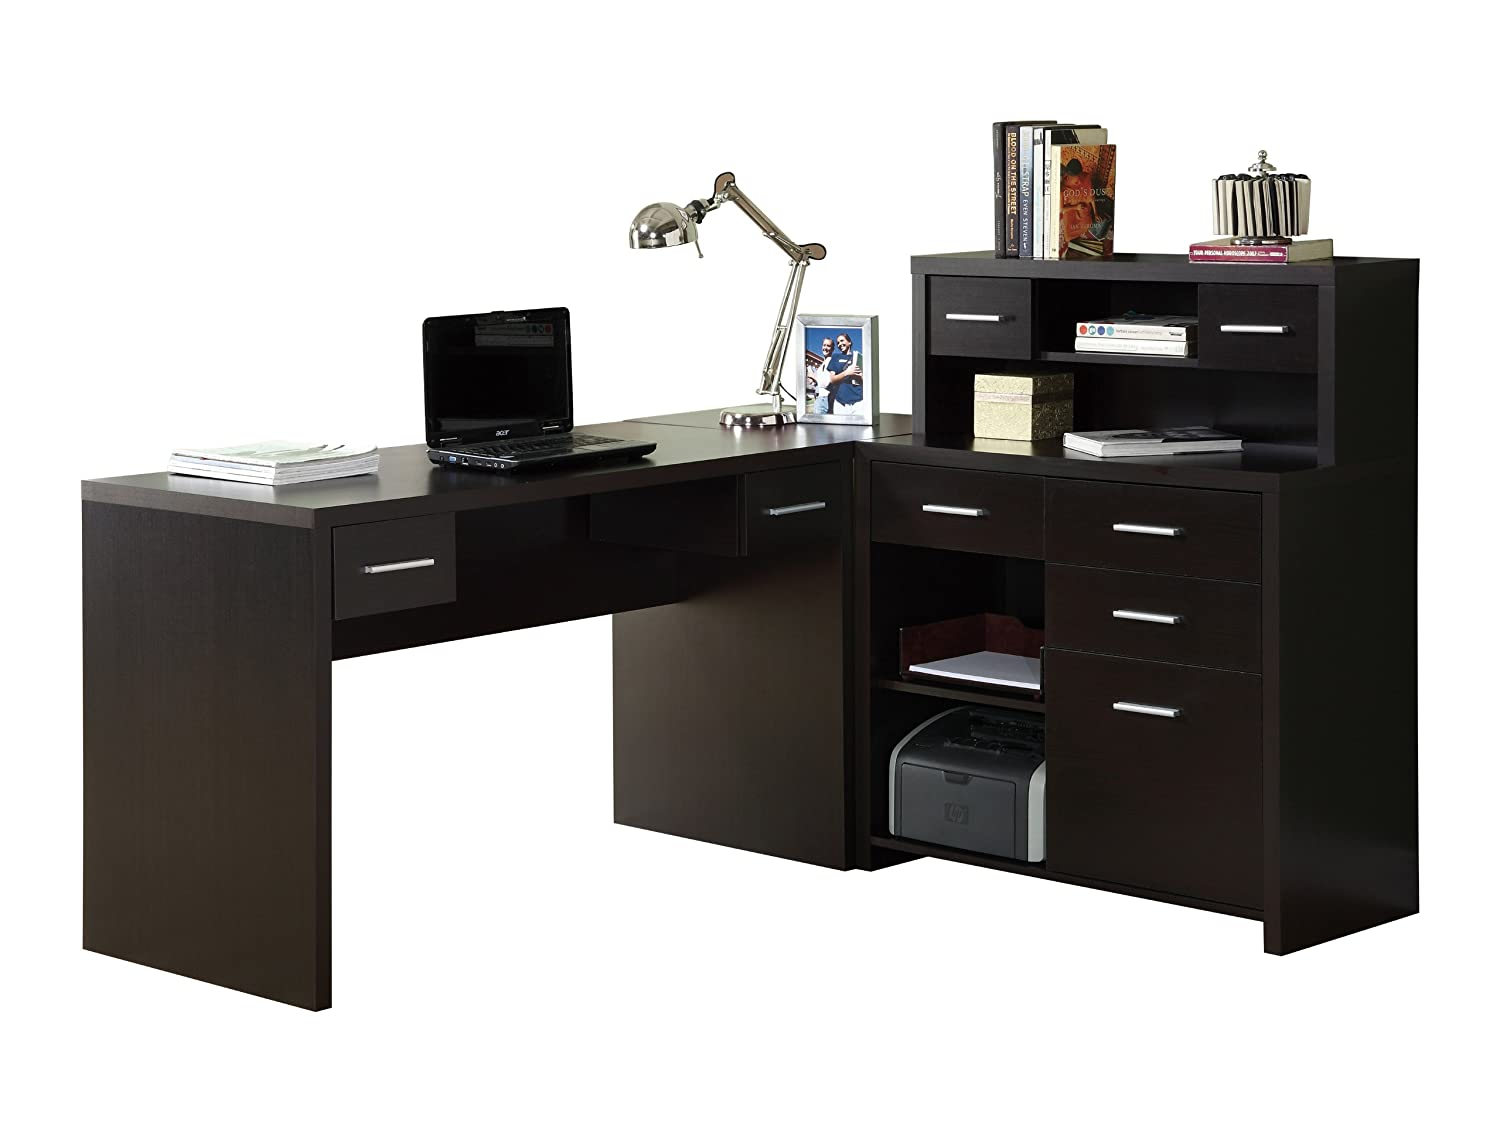 amazoncom monarch specialties hollow core l shaped home office desk cappuccino kitchen dining - Home Office L Shaped Desk